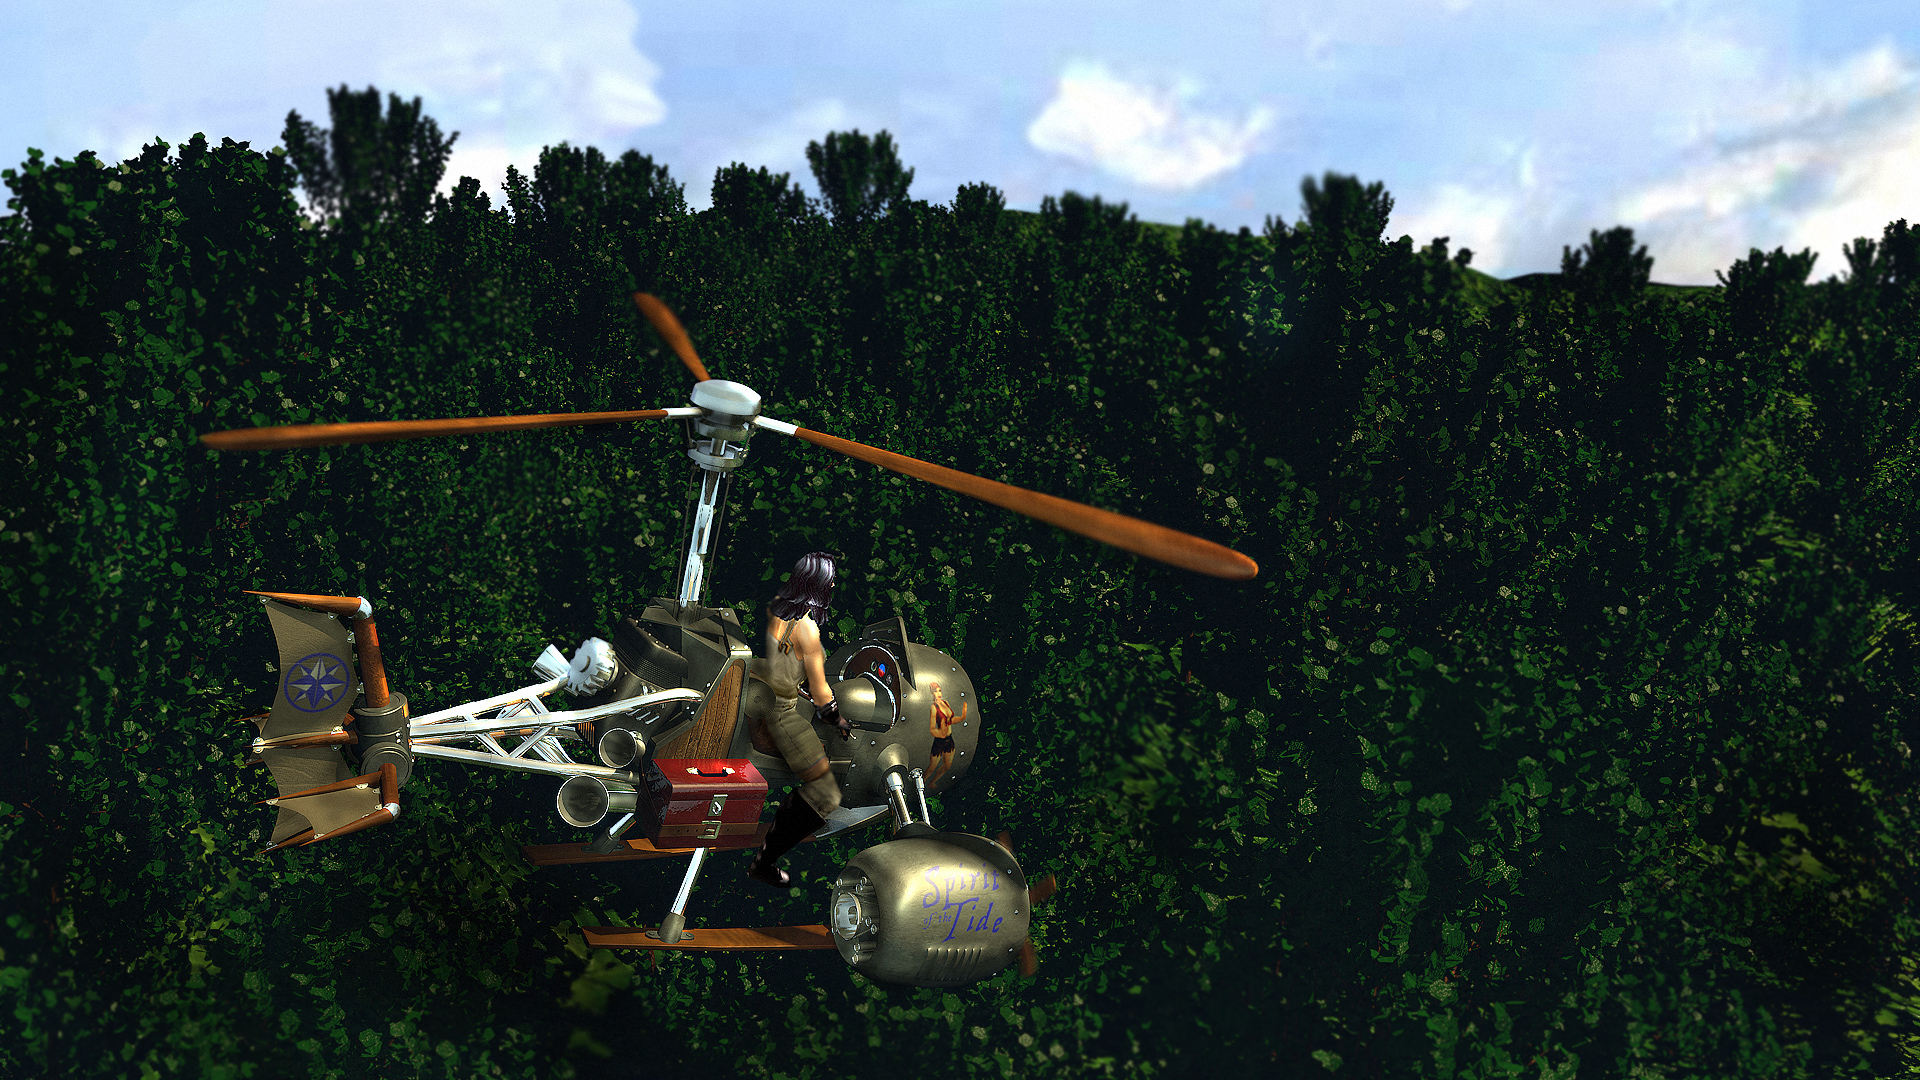 Gyrocopter flight - All star bar and grill